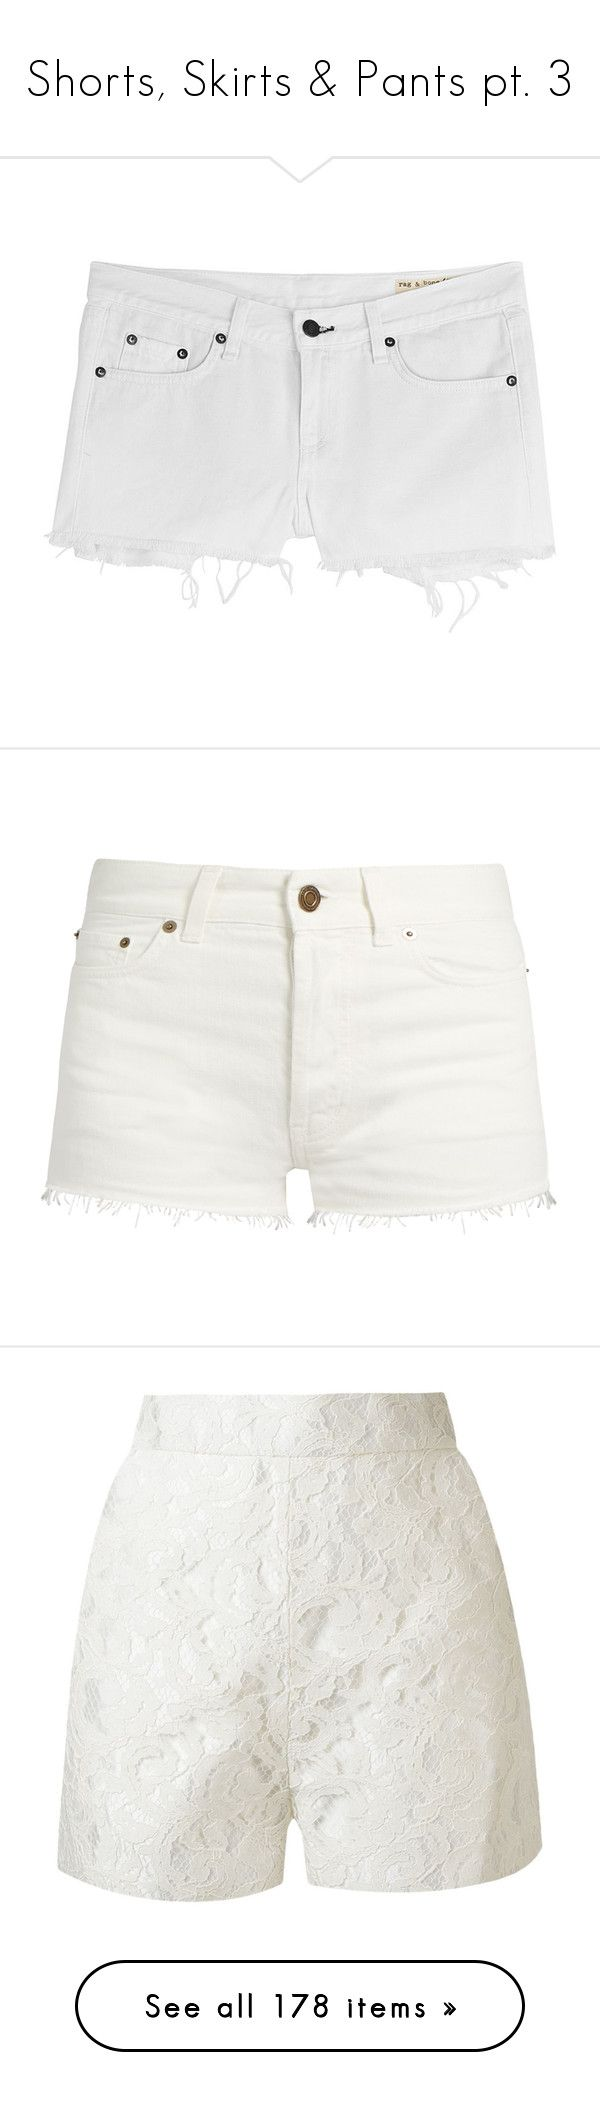 """Shorts, Skirts & Pants pt. 3"" by amarie104 ❤ liked on Polyvore featuring shorts, bottoms, pants, short, white, distressed denim shorts, white jean shorts, short shorts, denim cut-off shorts and white shorts"